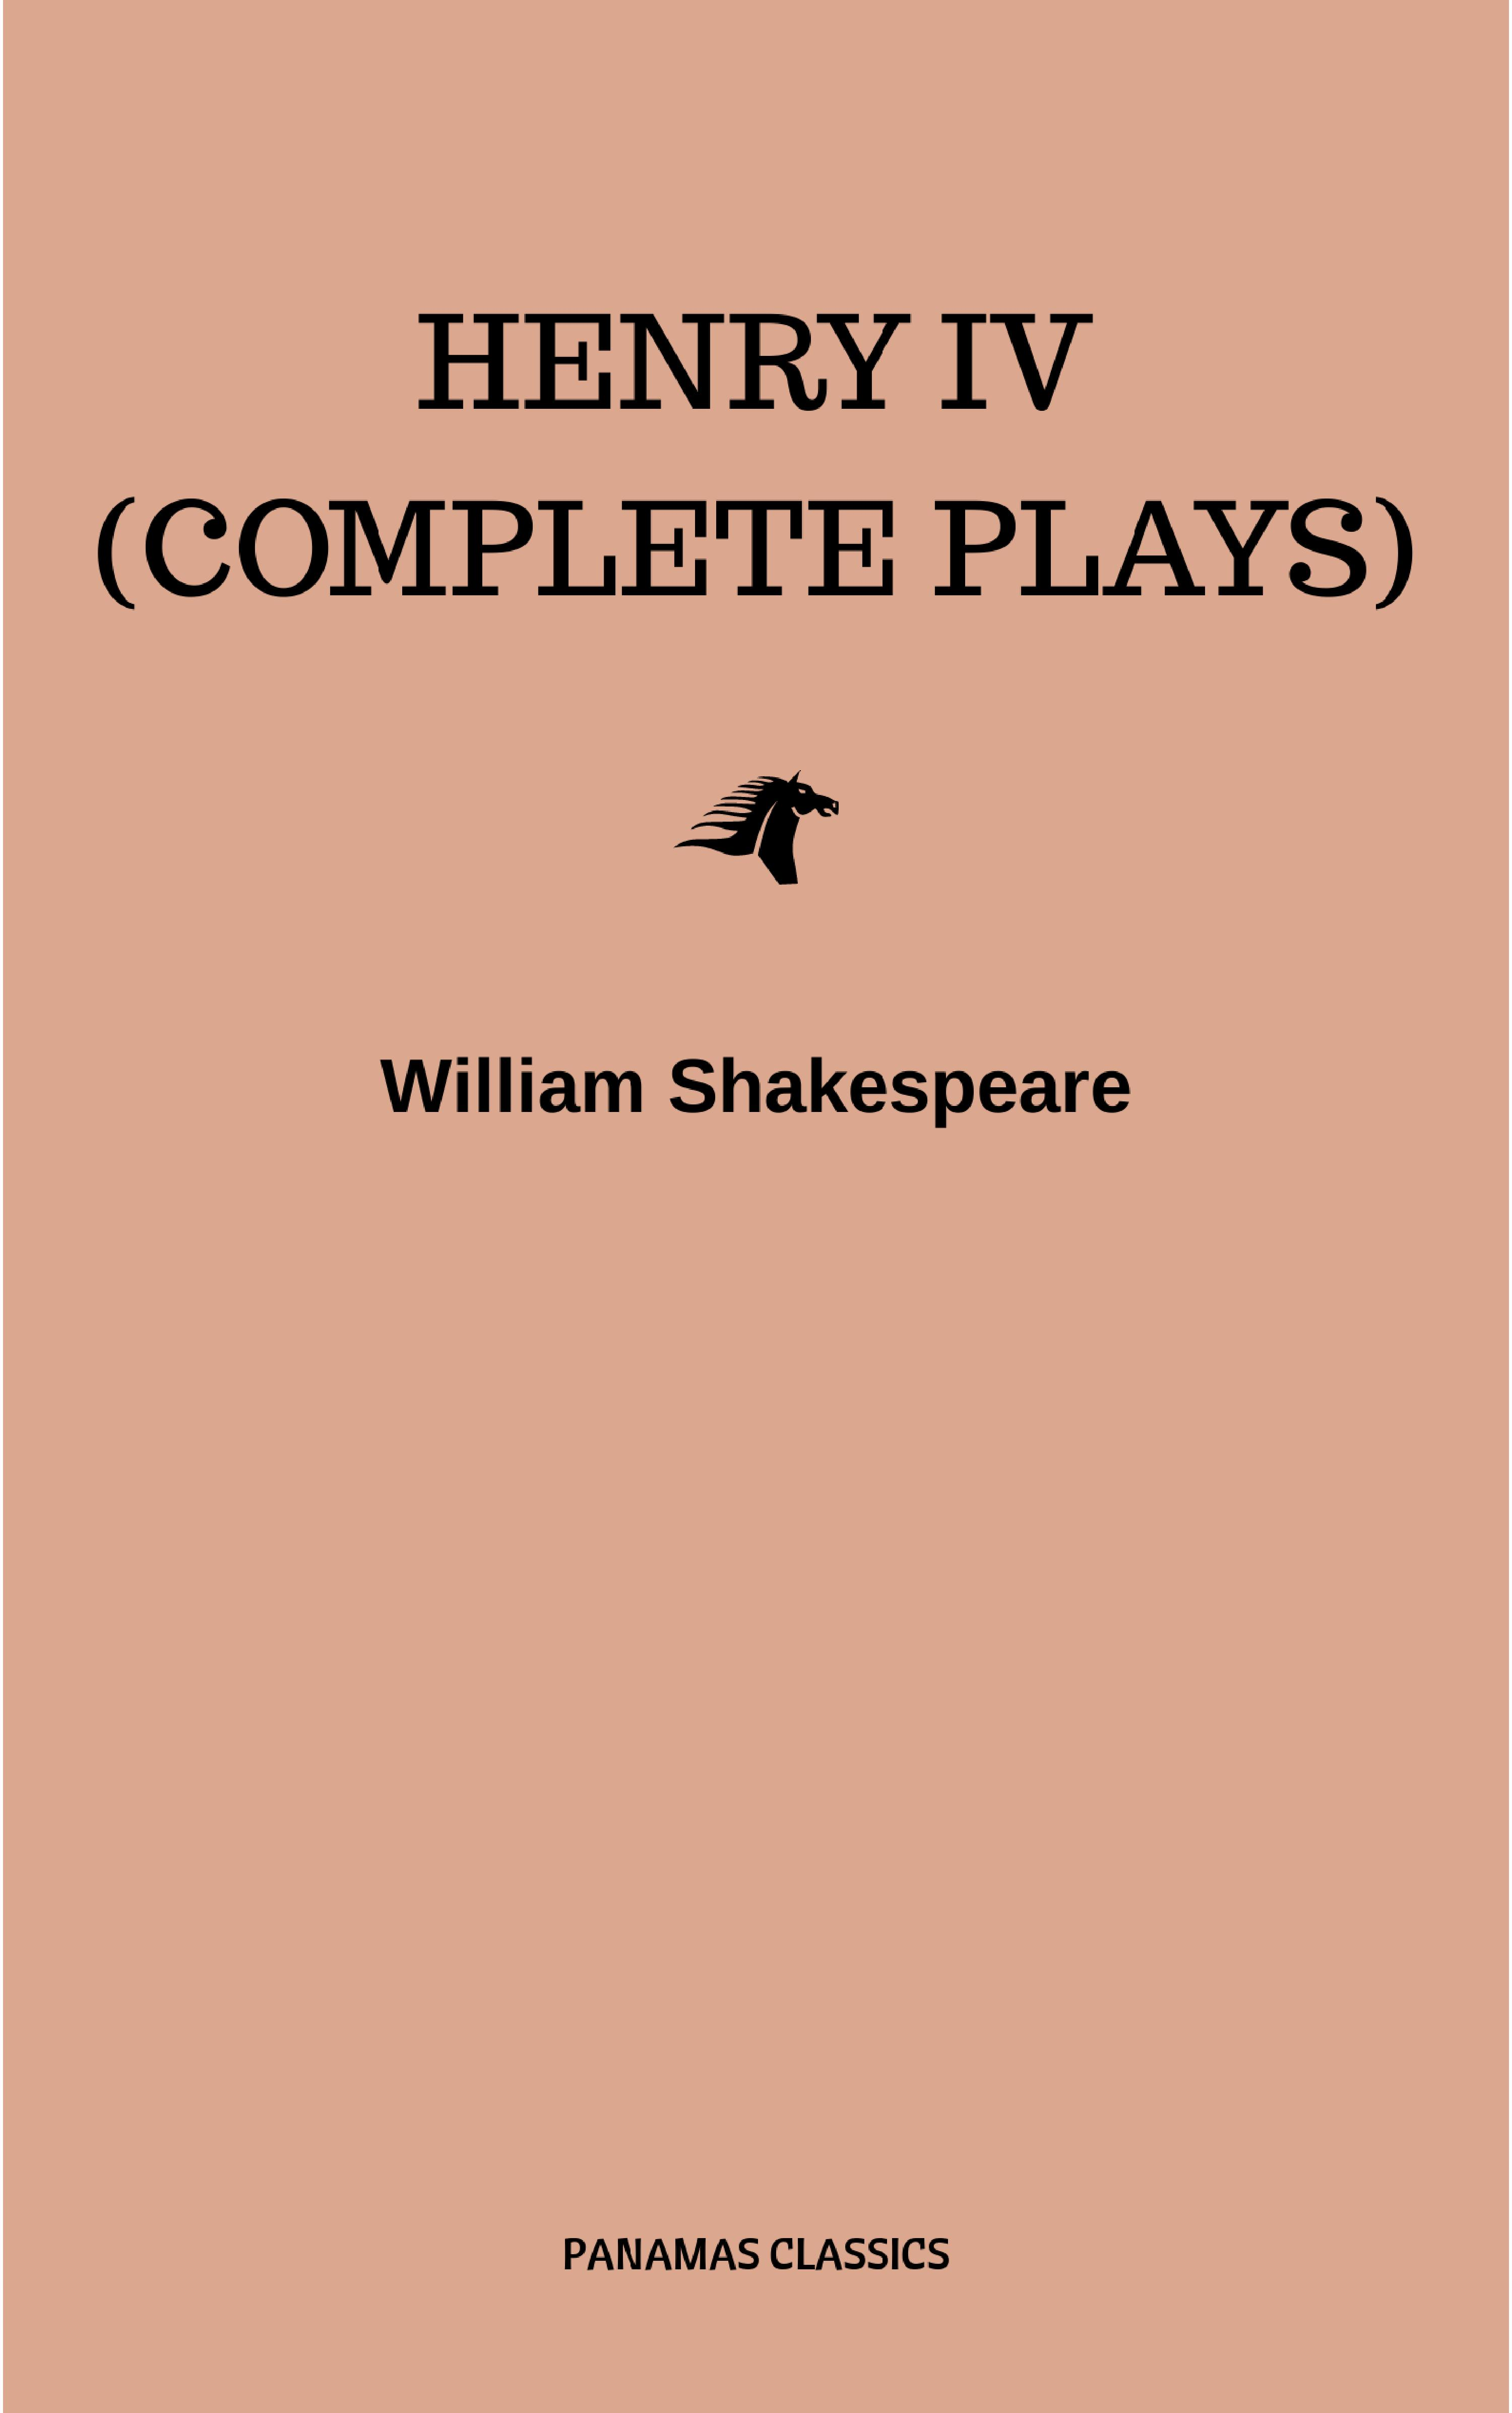 henry iv complete plays